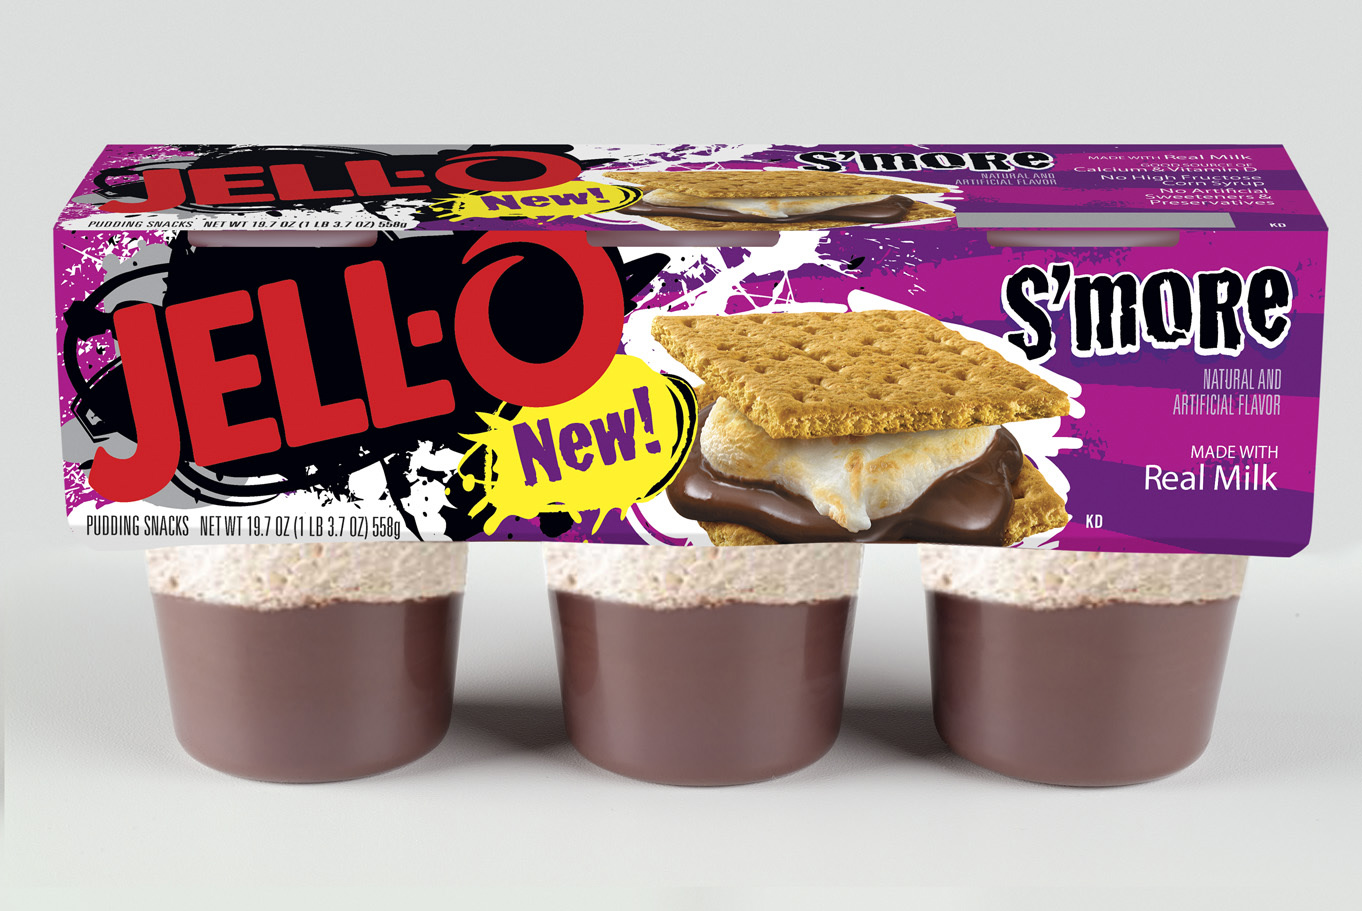 New Jello Pudding Snacks Flavors: S'more & Strawberry Sundae - Mommies ...